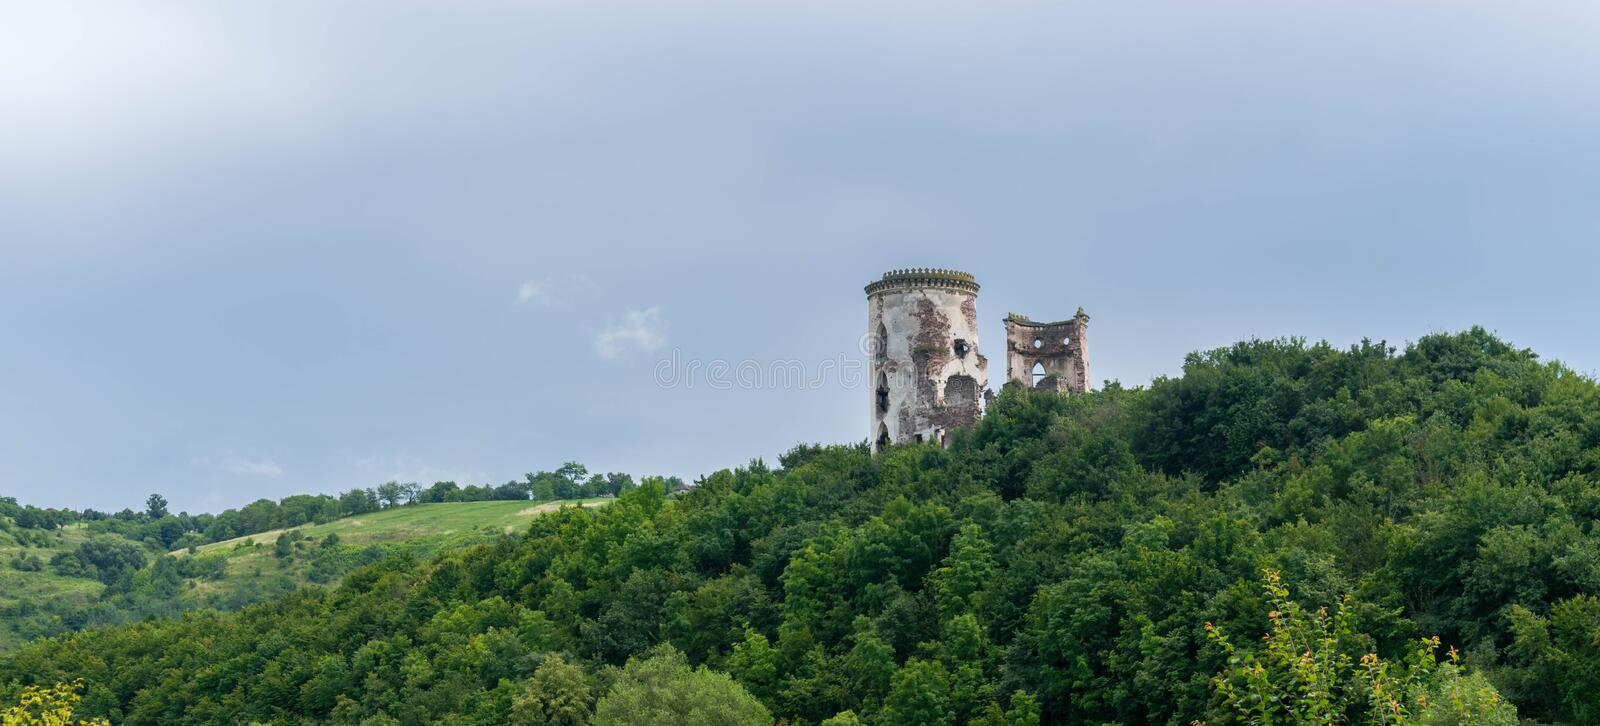 The ruins of the castle with two towers stock images